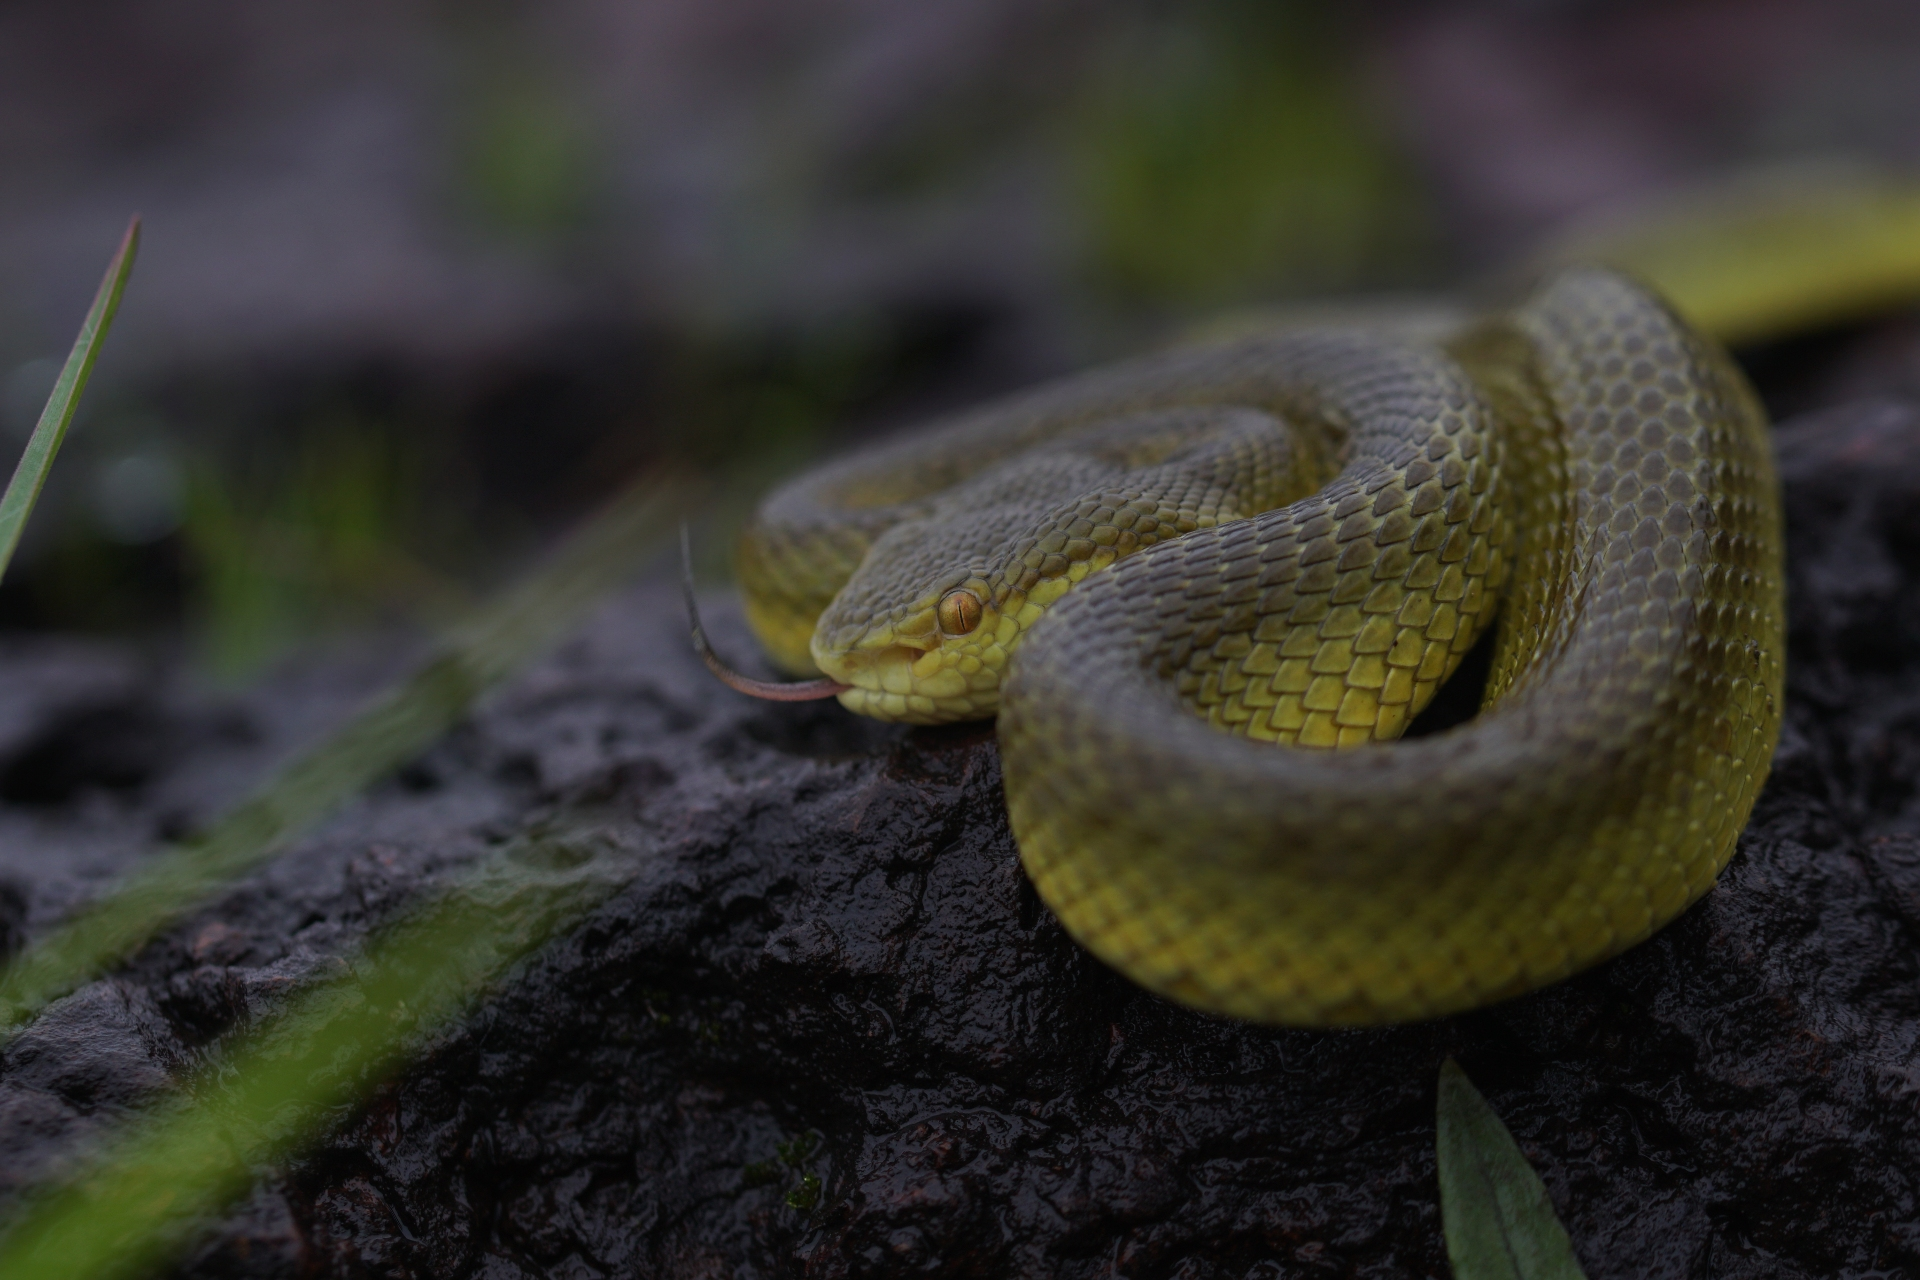 Bamboo pit vipers are rather more innocuous vipers. Named after their alleged fondness for bamboo groves, these snakes are mostly tree-dwelling, but can be seen on the ground, especially near streams, coiled up on rocks. Photo: Omcar Pai